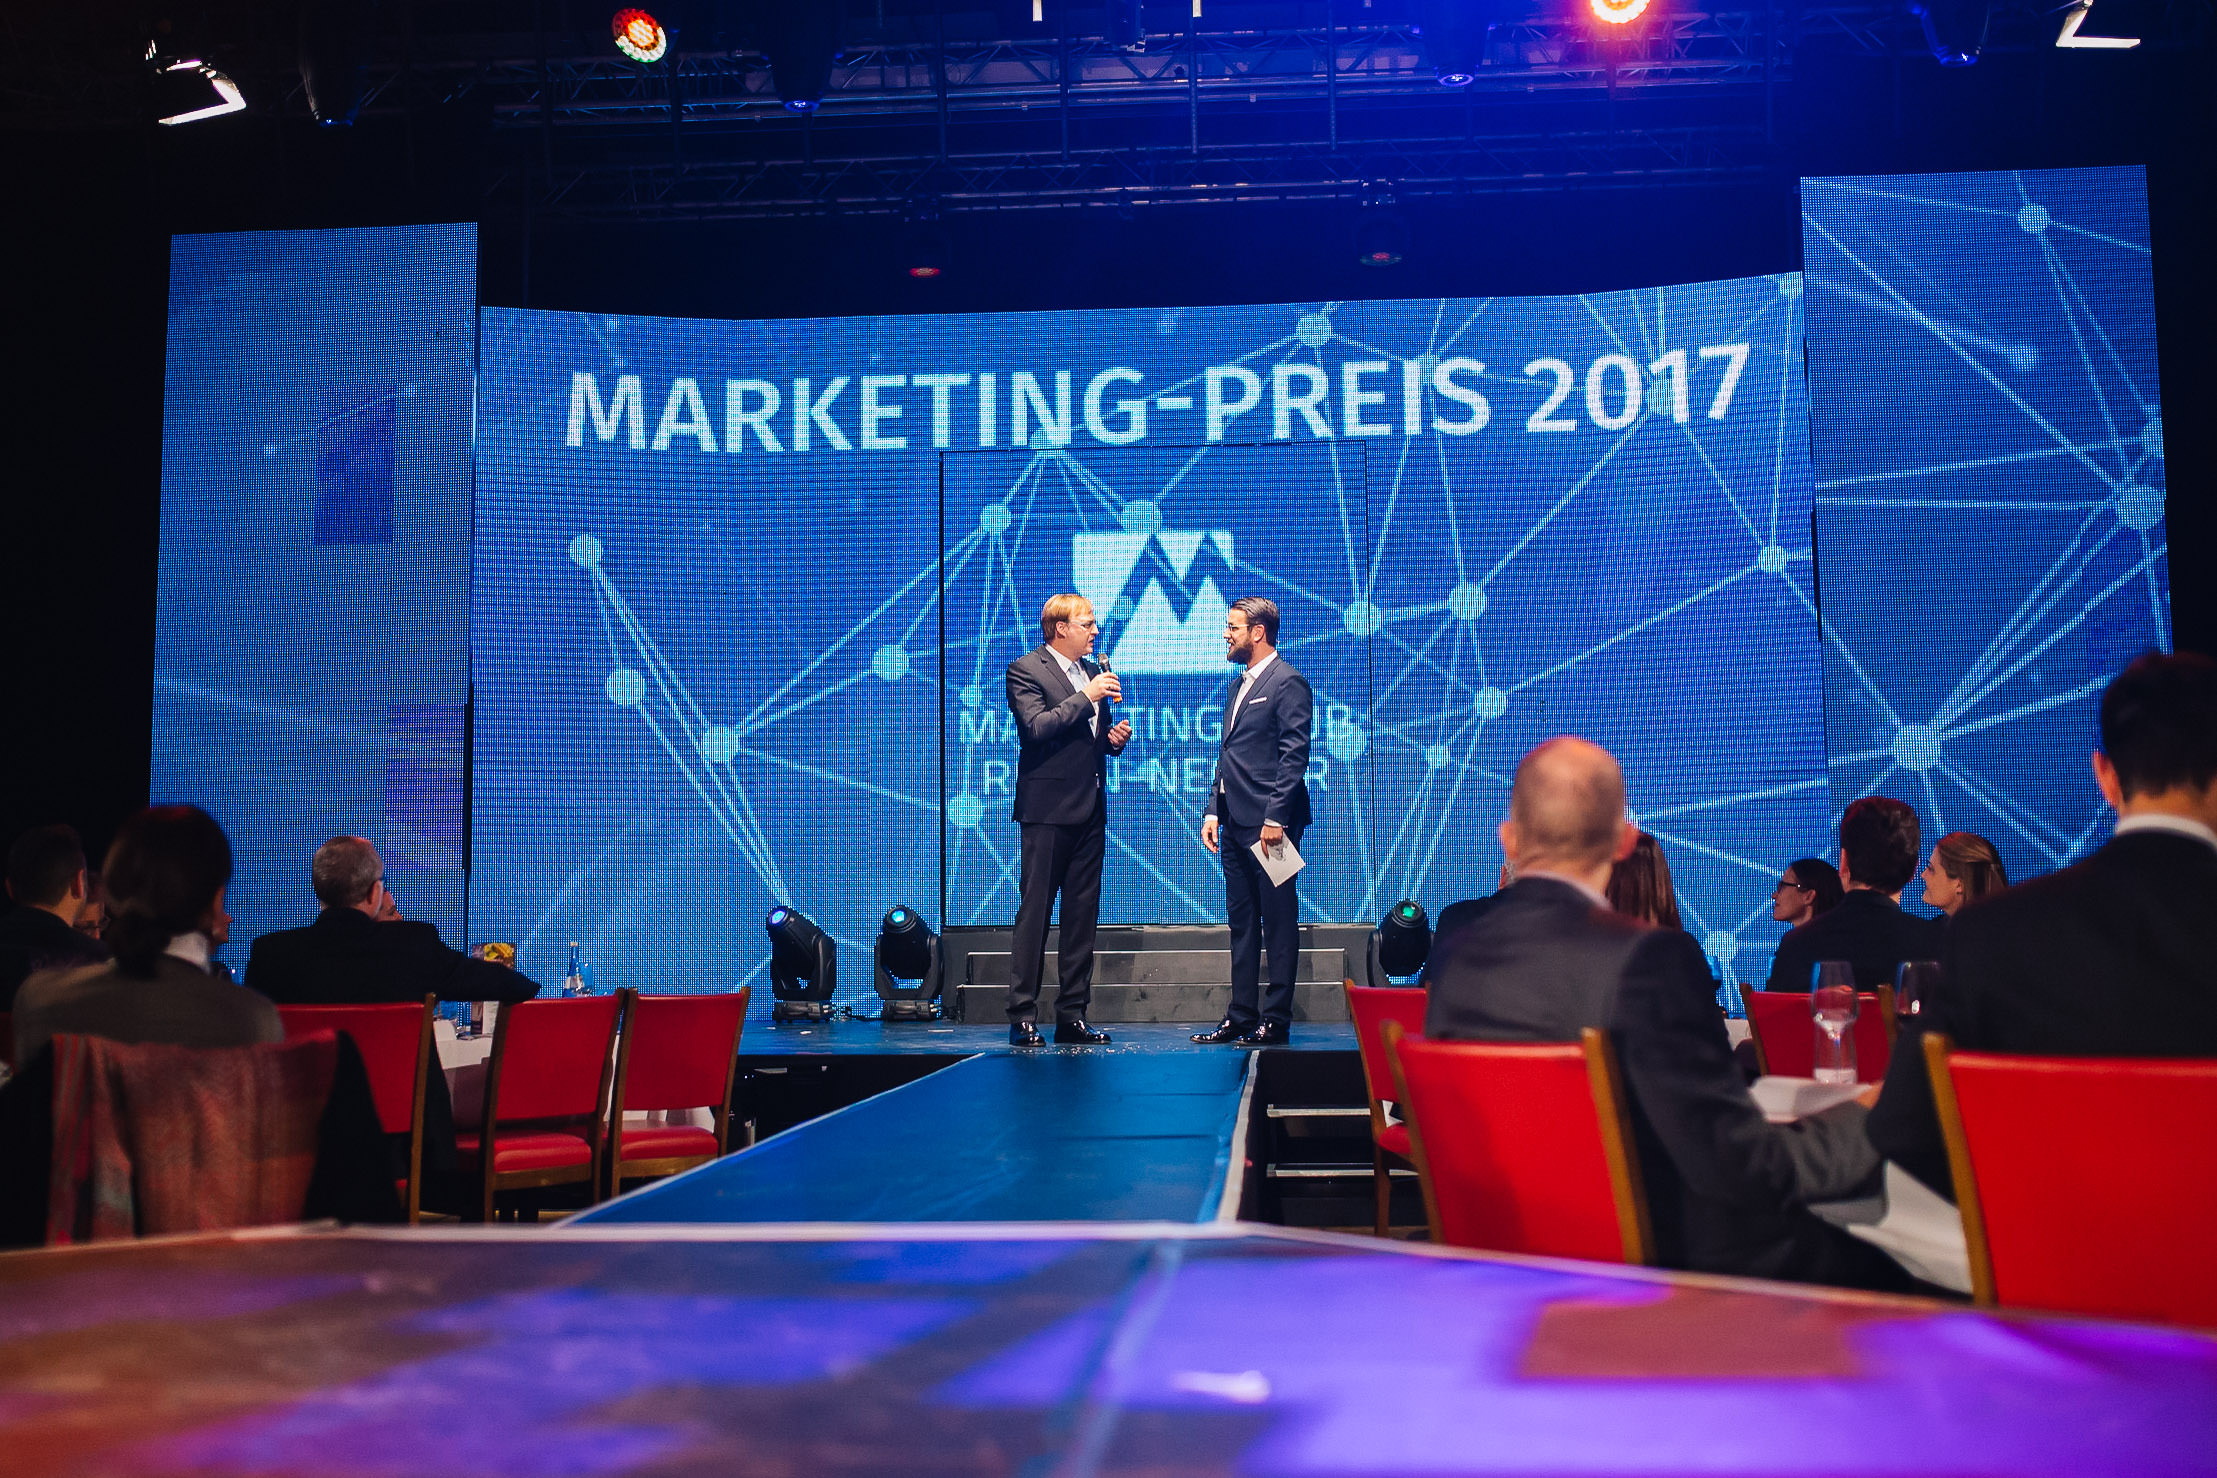 Marketing-Preis-2017-Heidelberger-Schloss-0024.jpg